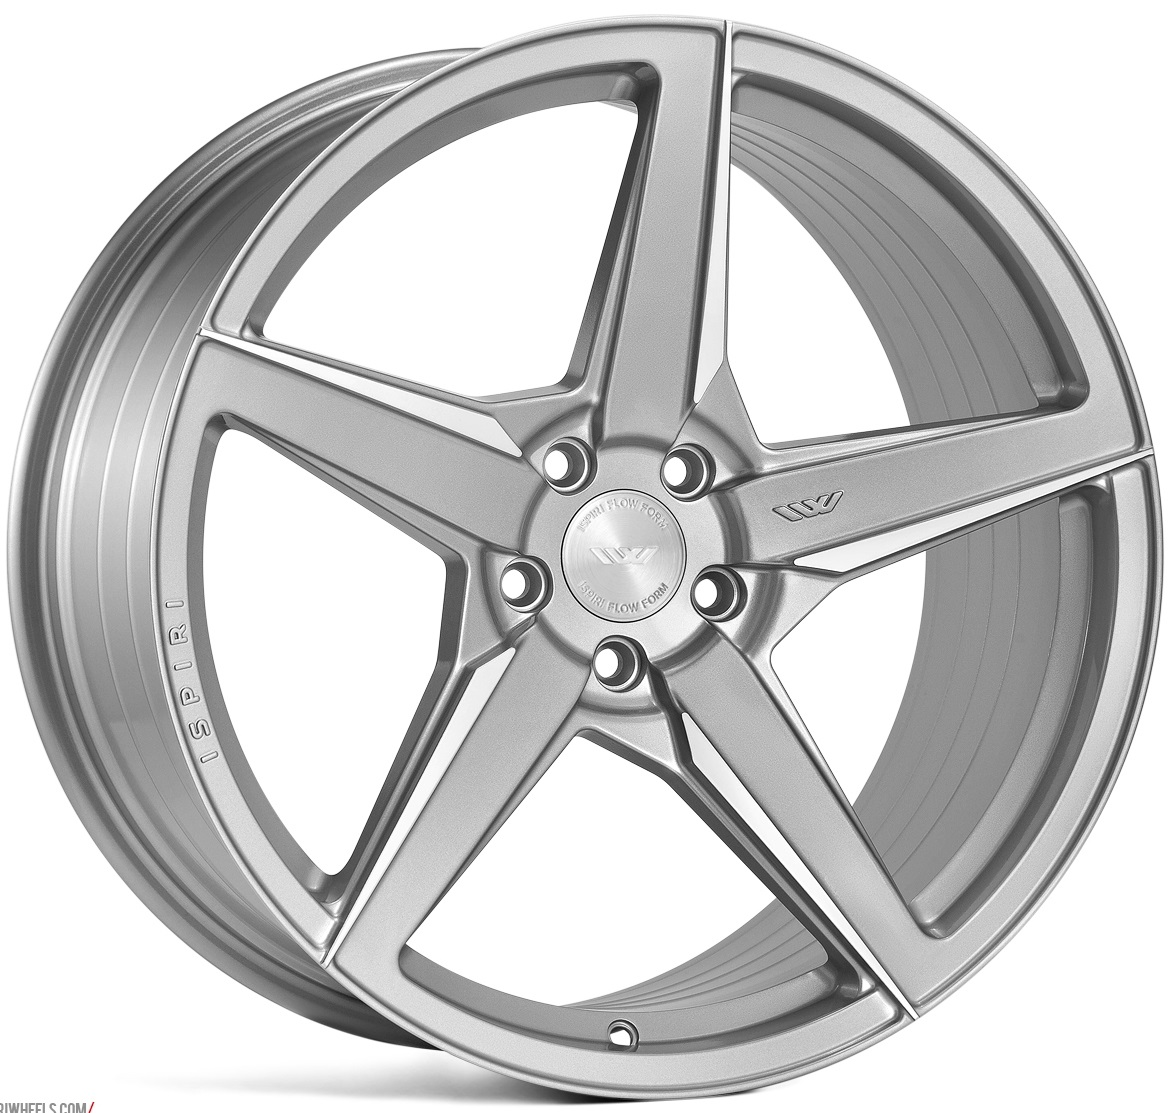 IW Automotive - FFR5 (Pure Silver Brushed)